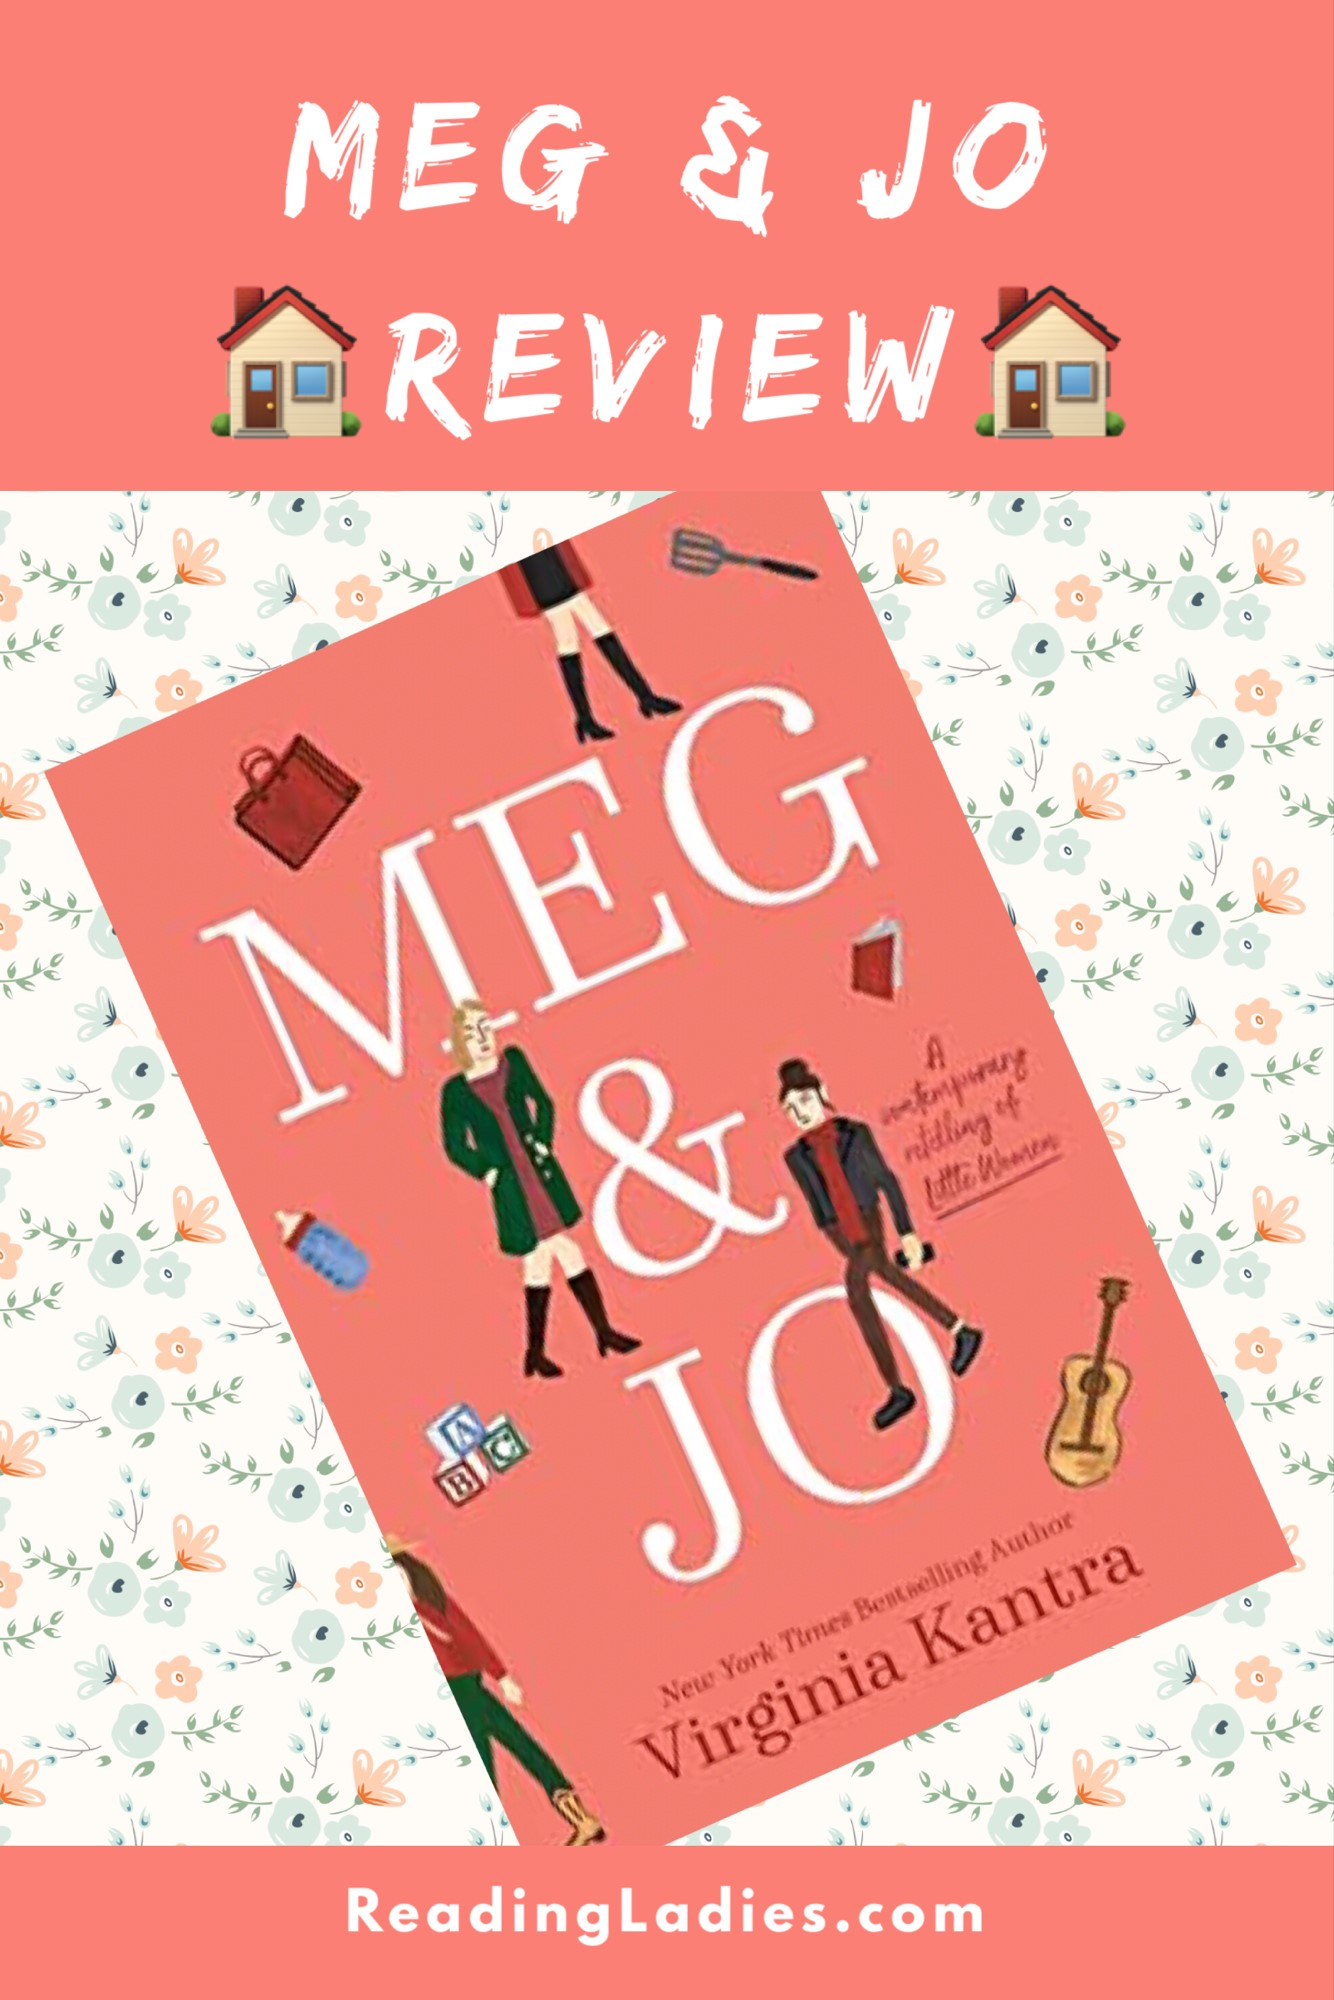 Meg and Jo Review